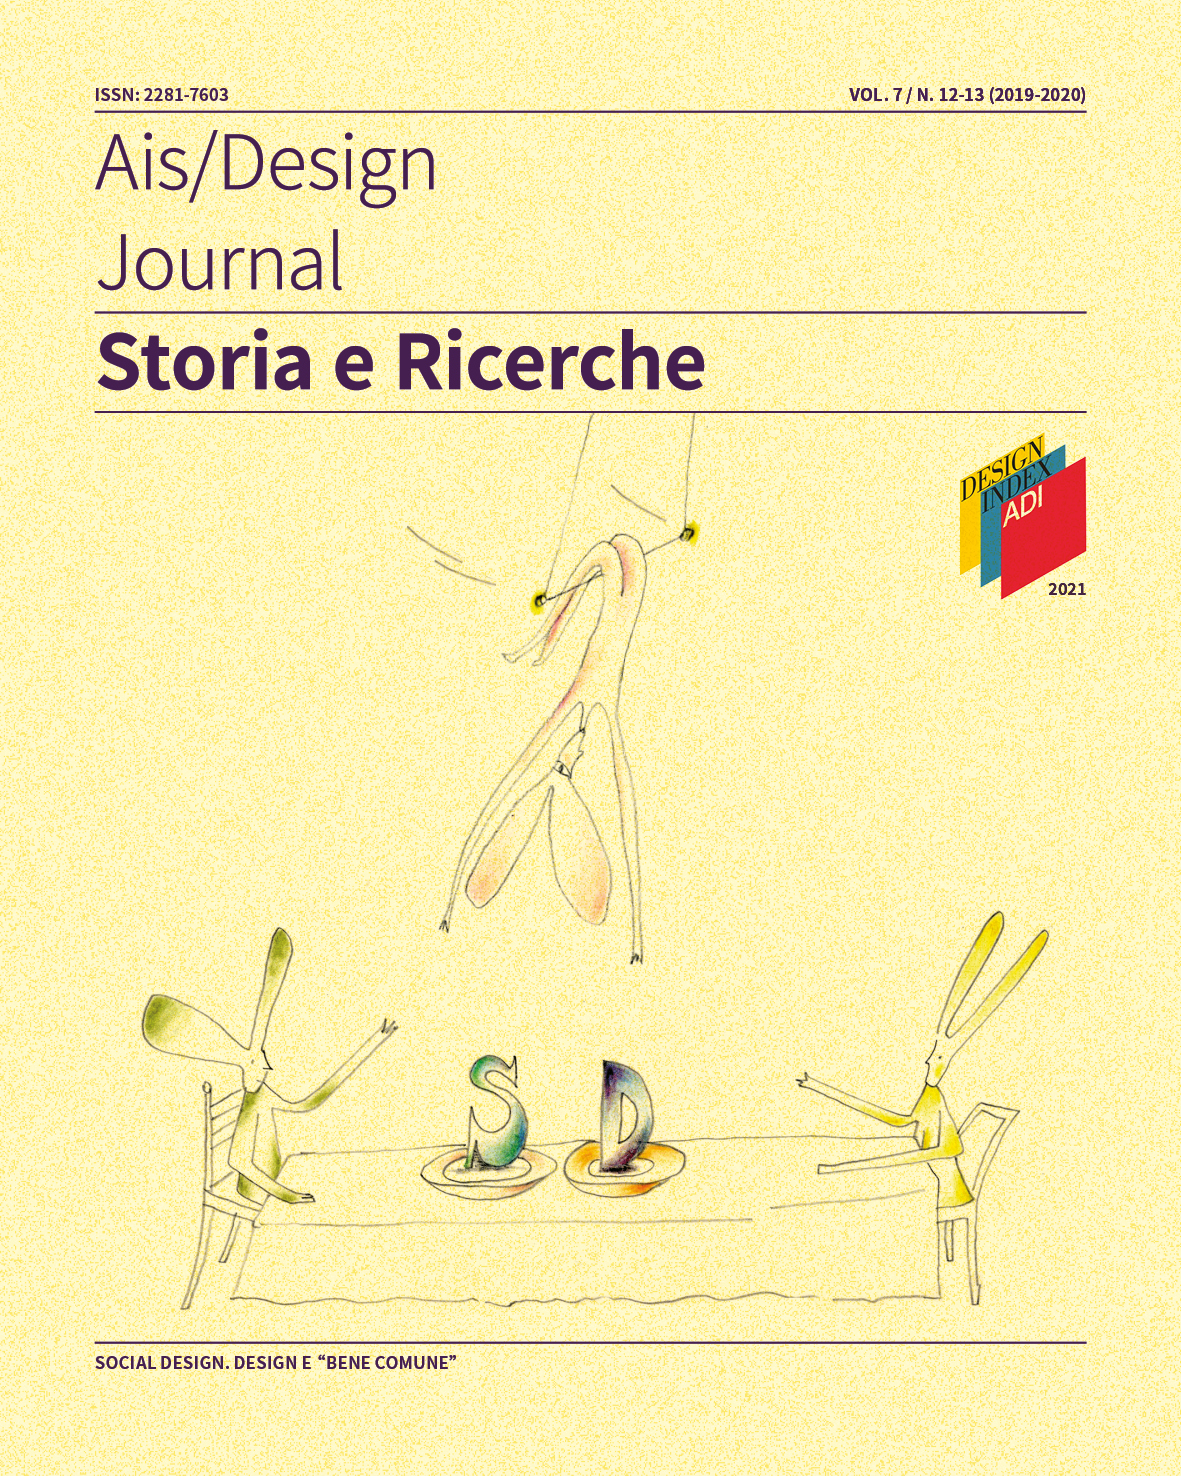 #12-13 AIS/DESIGN JOURNAL / SOCIAL DESIGN